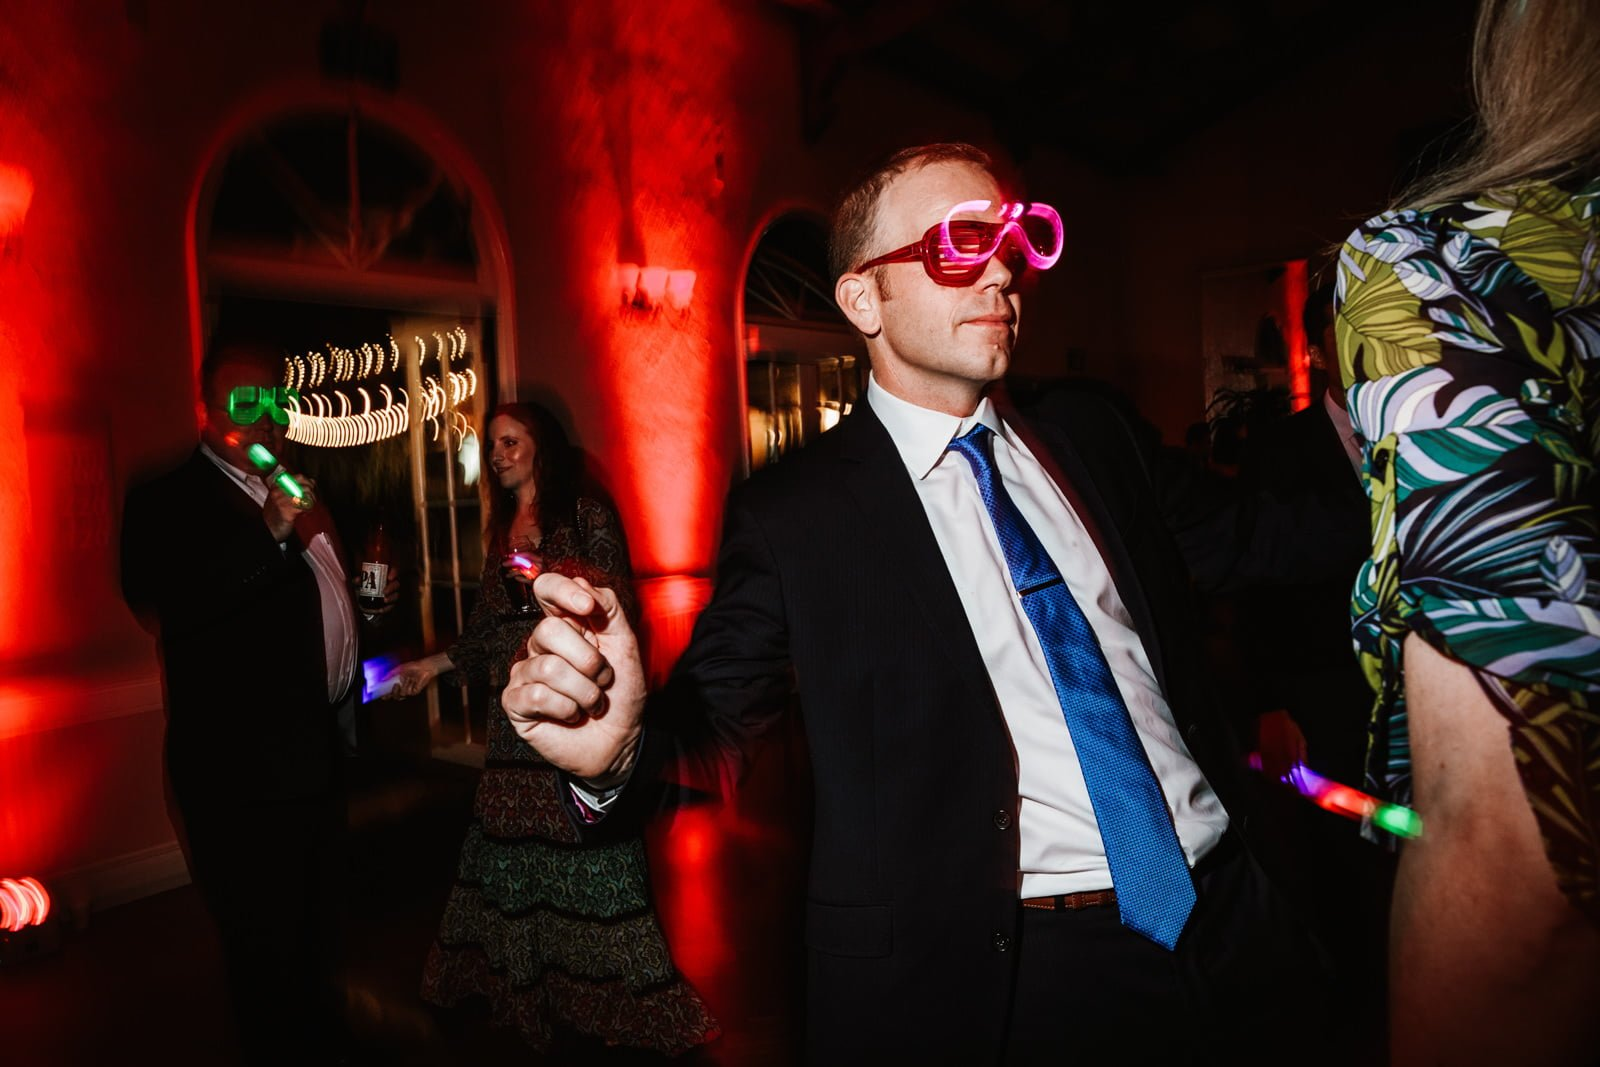 Dancing with glow glasses